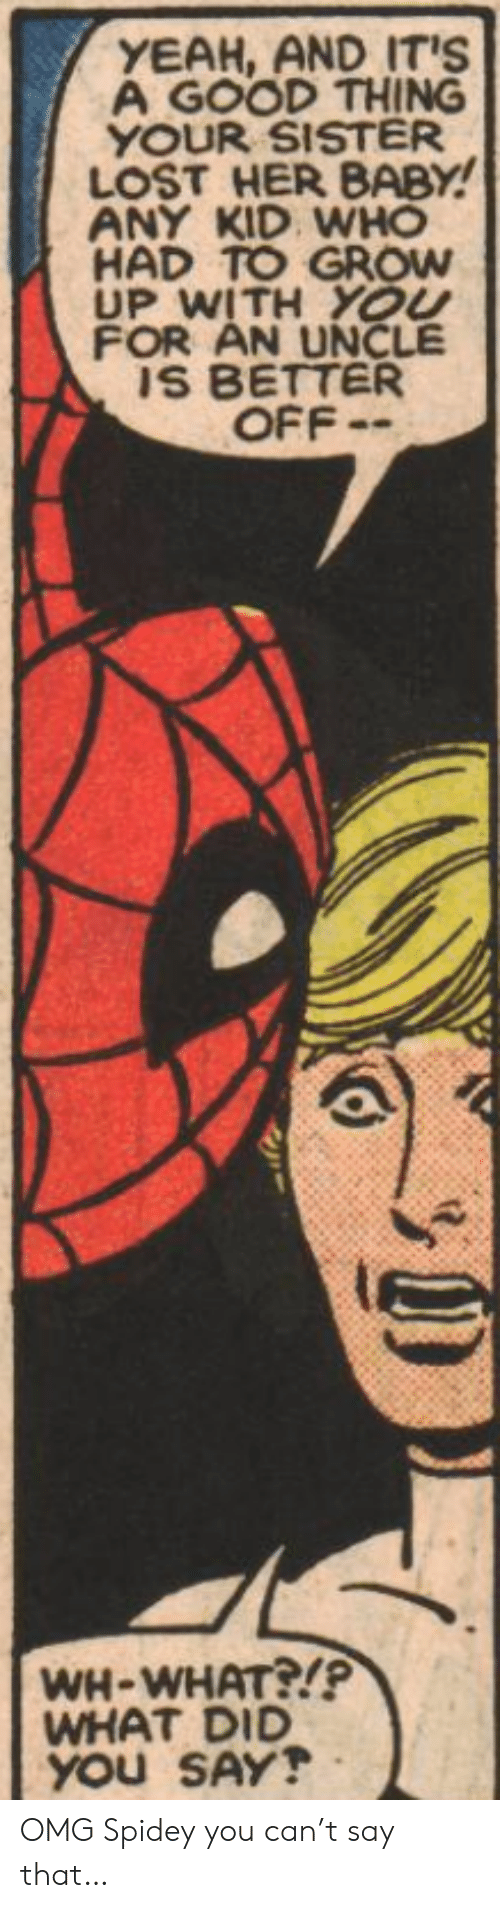 Omg, Yeah, and Lost: YEAH, AND IT'S  A GOOD THING  YOUR SISTER  LOST HER BABY!  ANY KID WHO  HAD TO GROW  UP WITH YOU  FOR AN UNCLE  IS BETTER  OFF-  WH-WHAT?!P  WHAT DID  YOU SAY! OMG Spidey you can't say that…